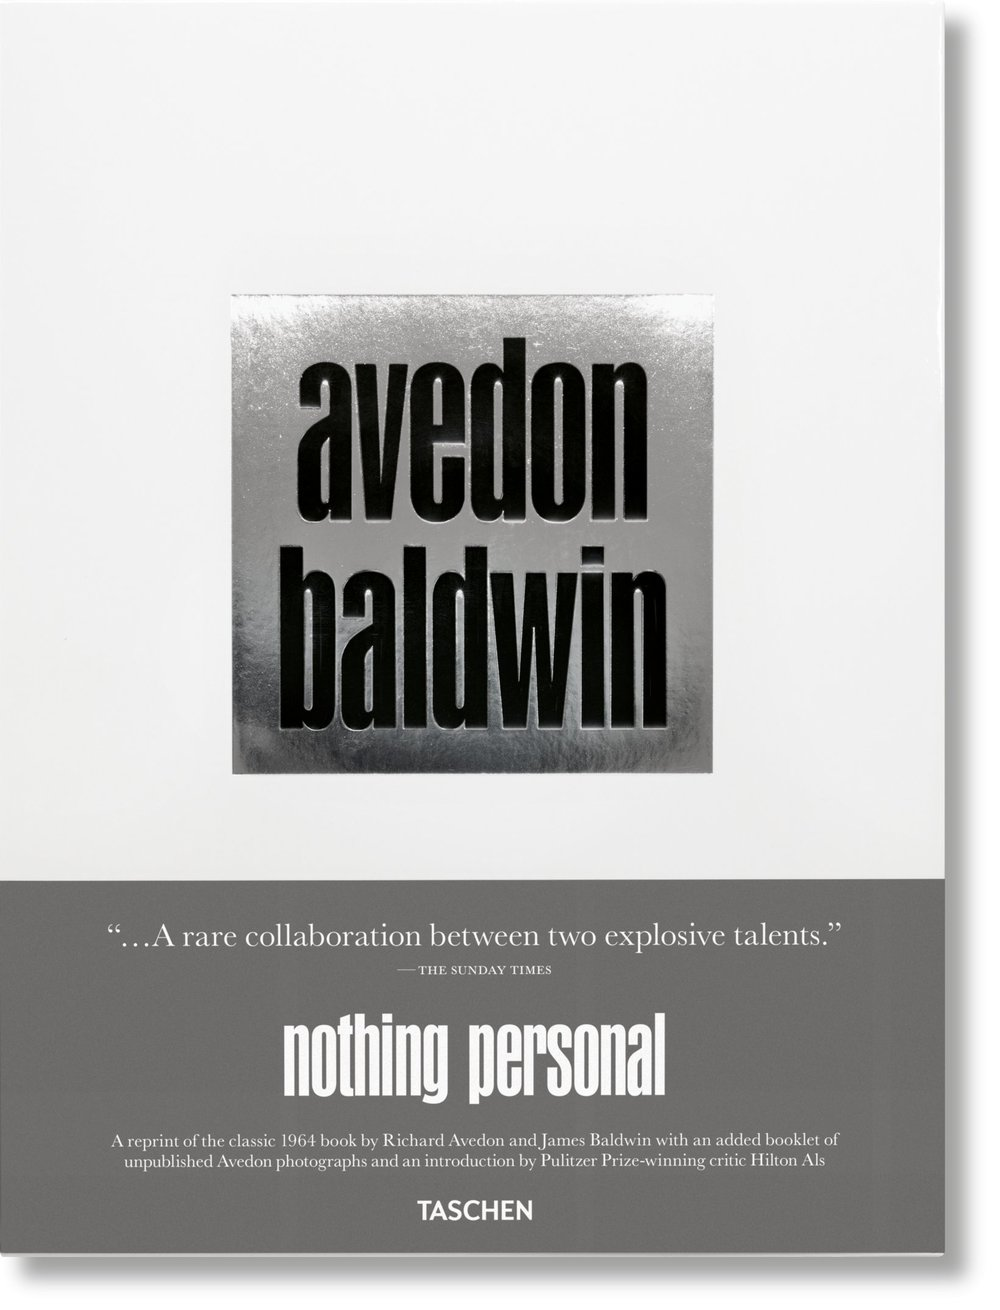 fo-avedon_nothing_personal-cover_66923.jpg